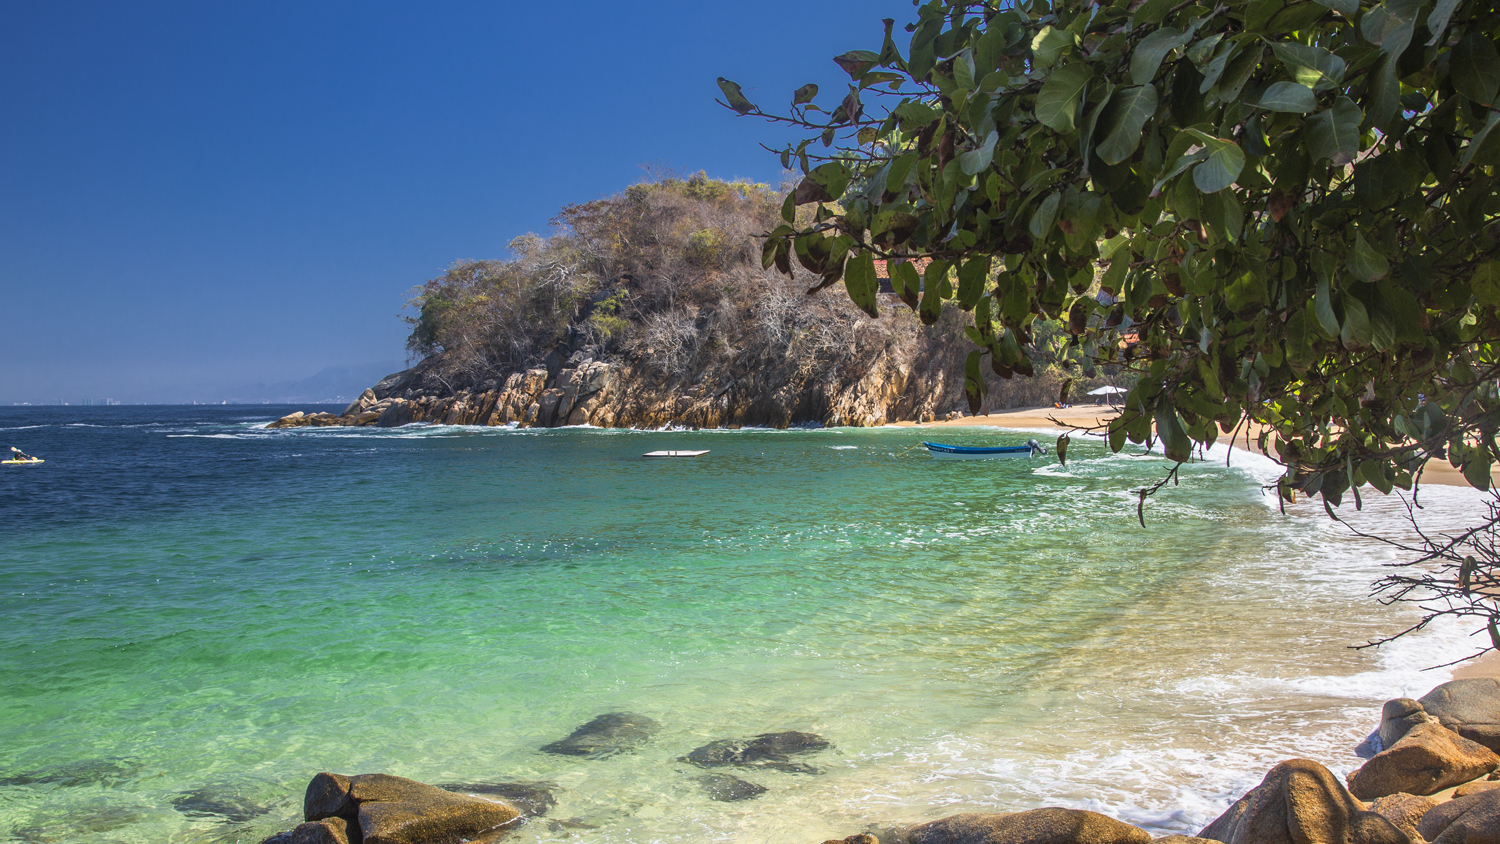 Four south vallarta's beaches that you must visit